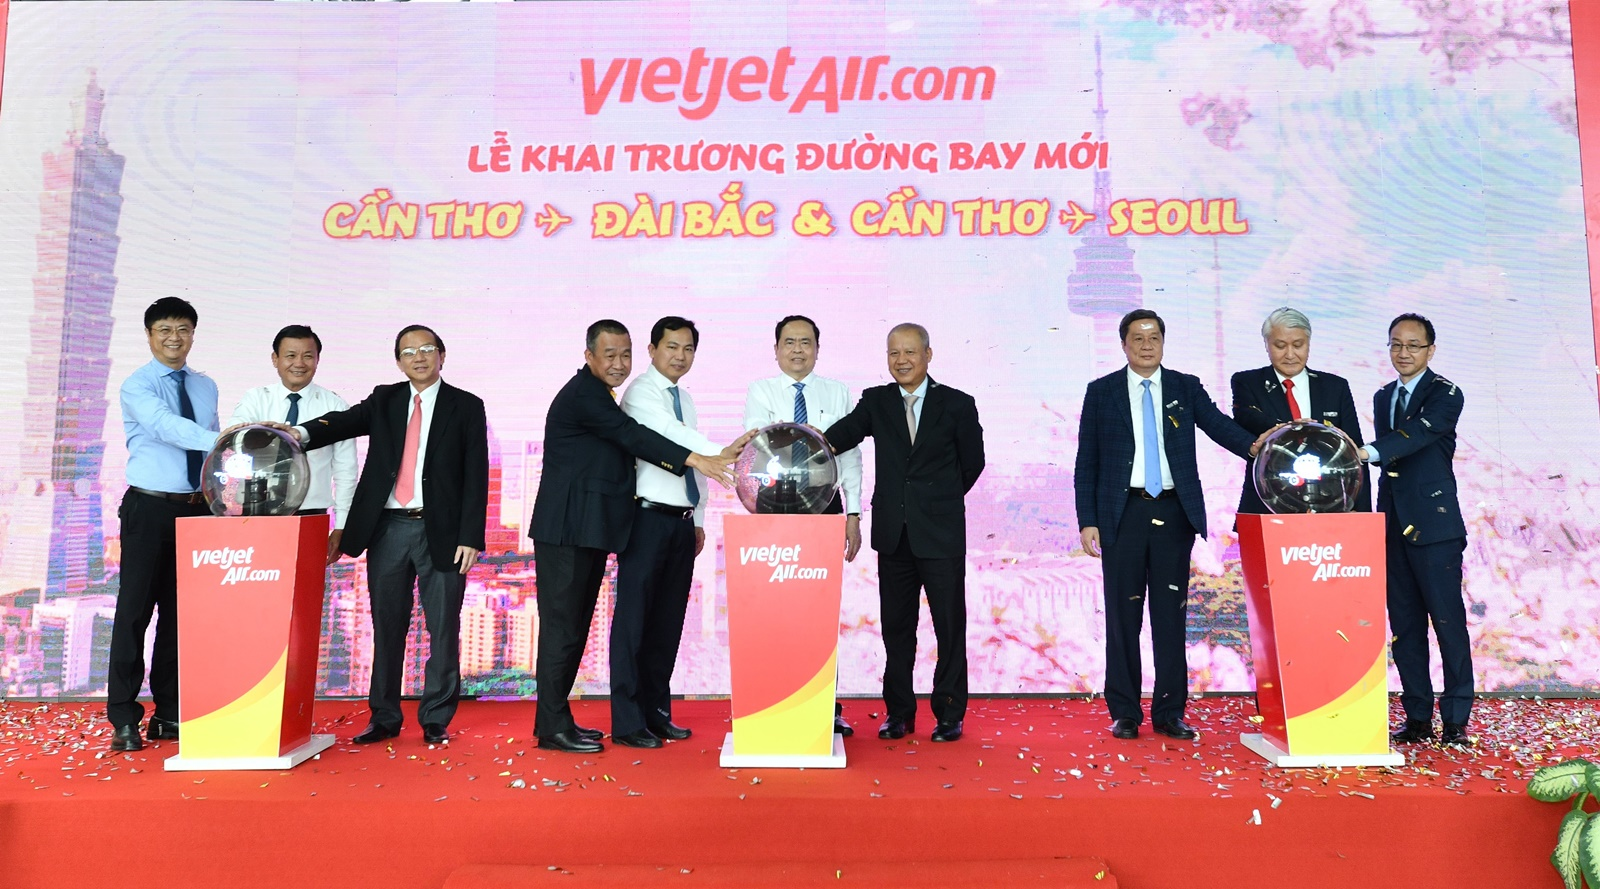 Vietjet operates flights connecting Can Tho with Seoul, Taipei